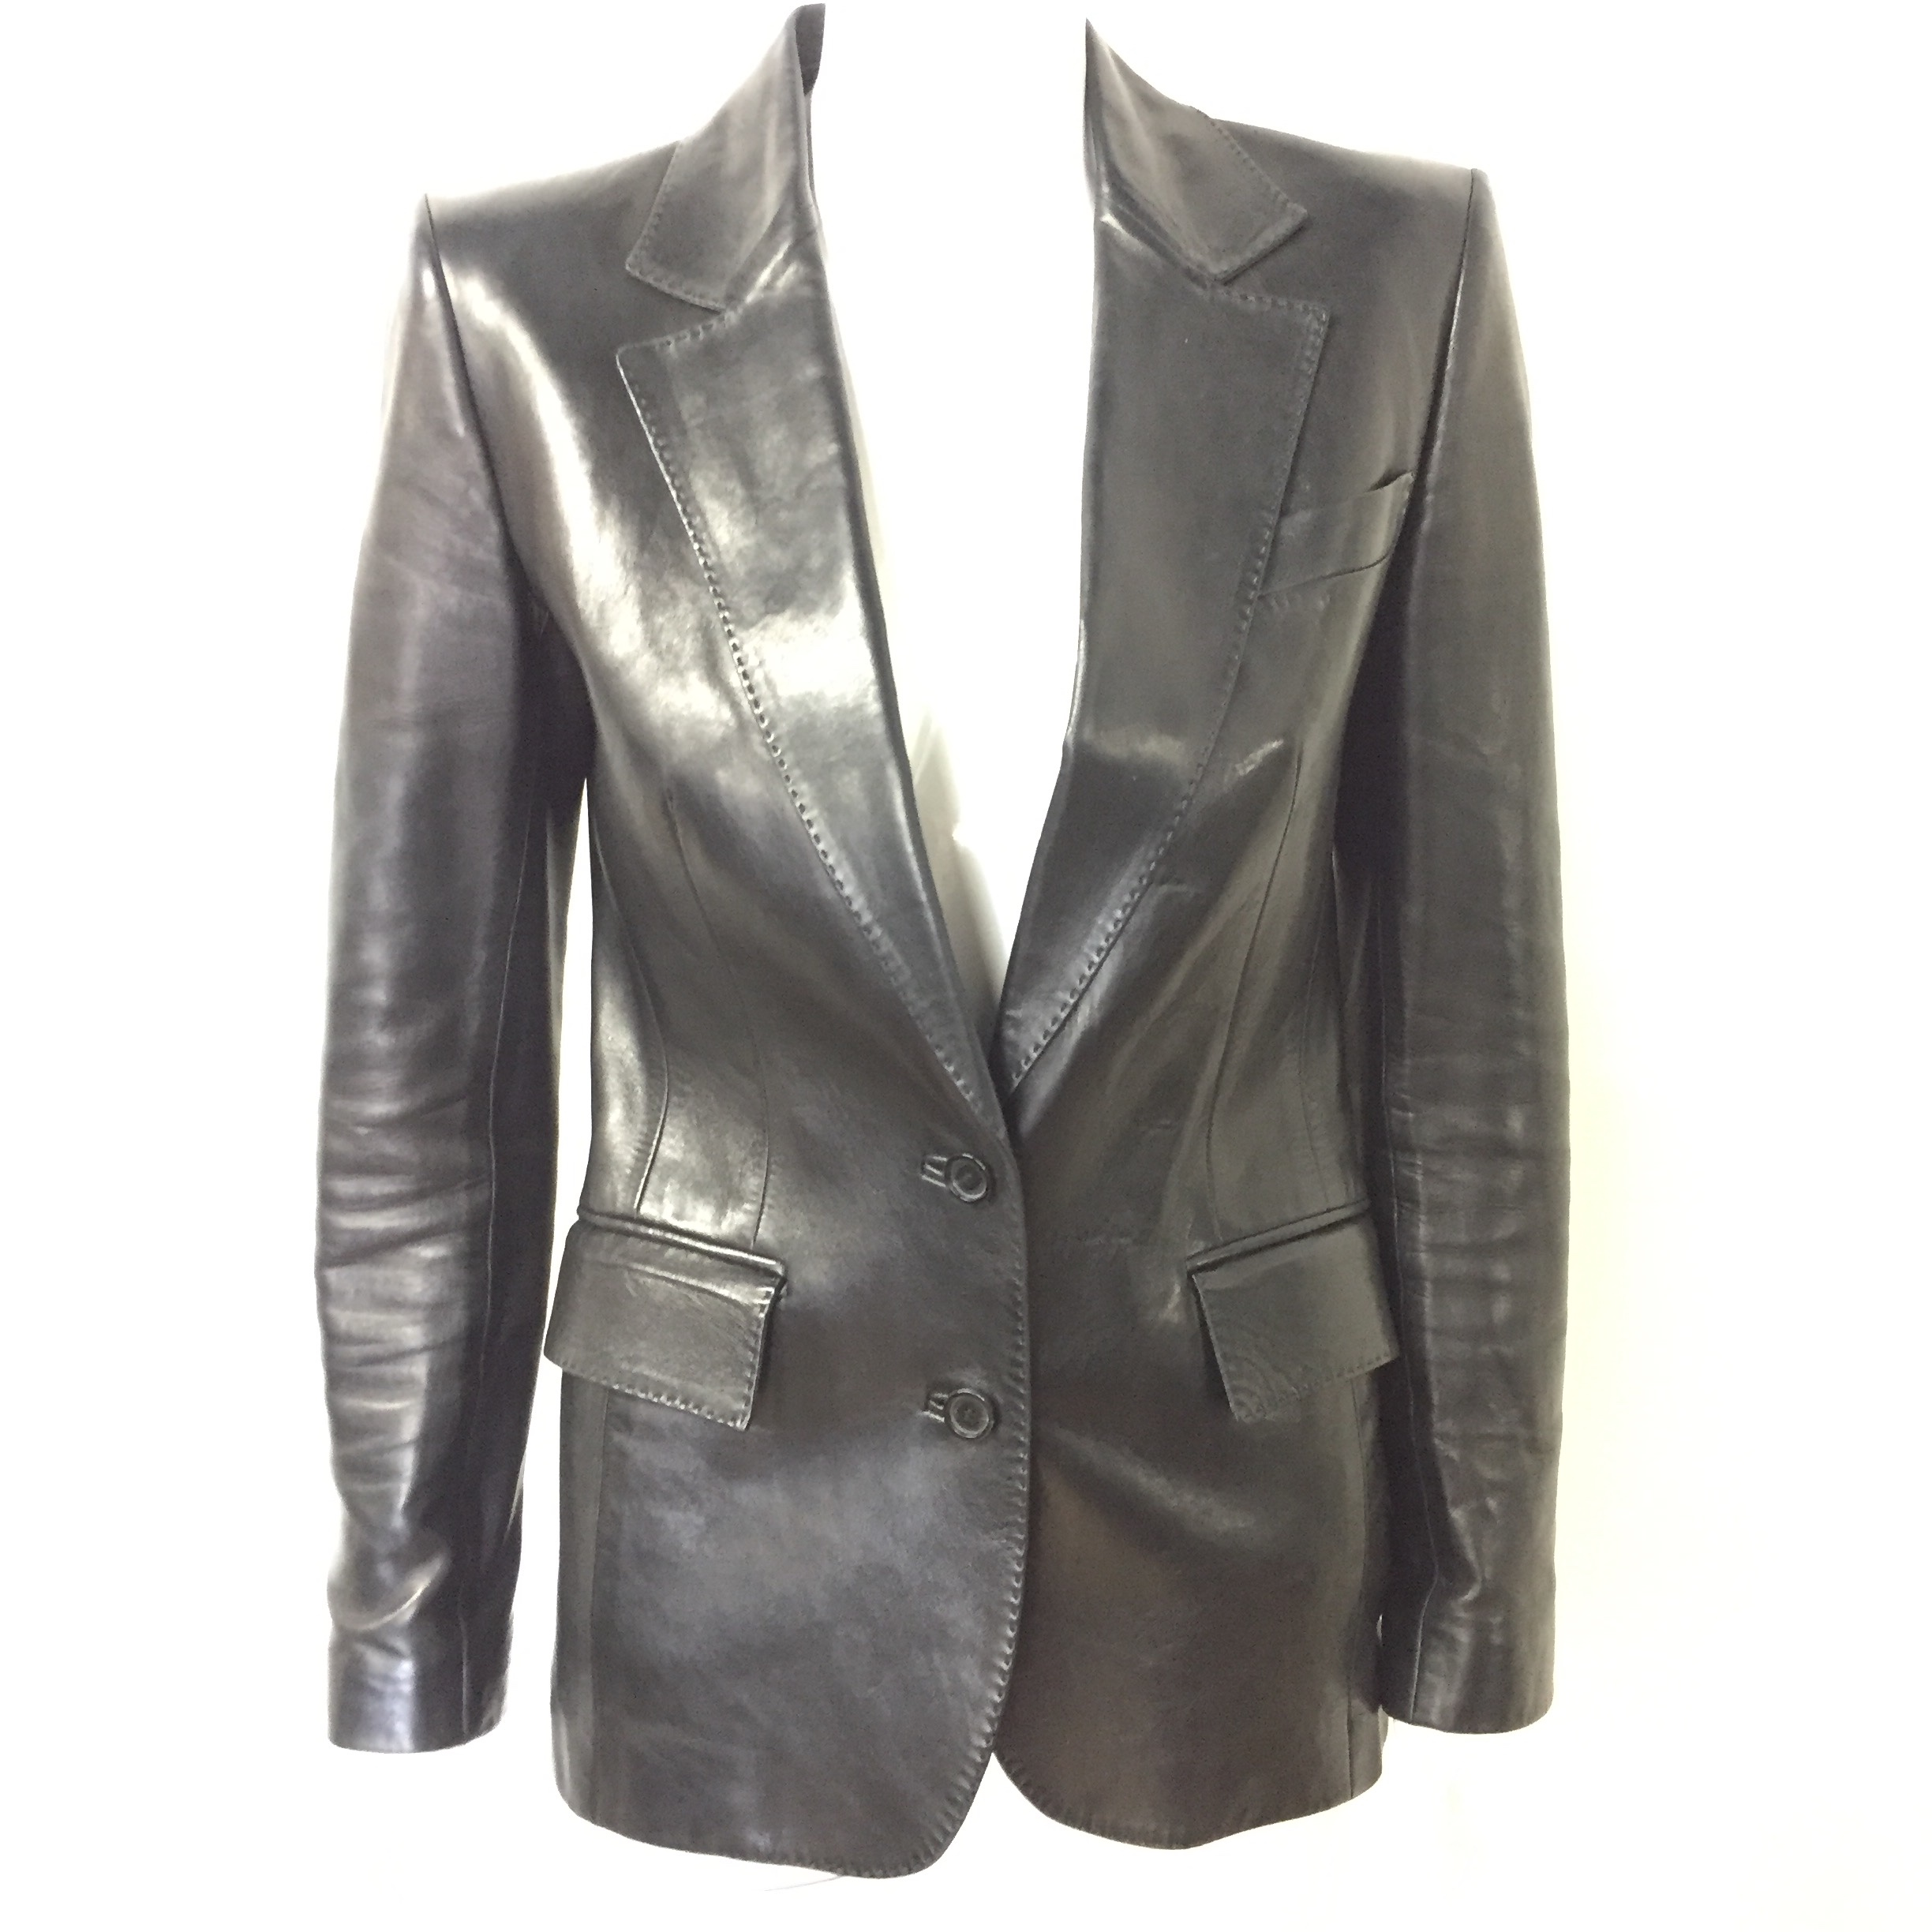 8bbb8a00af47 Gucci leather jacket 40 - Closet Couture